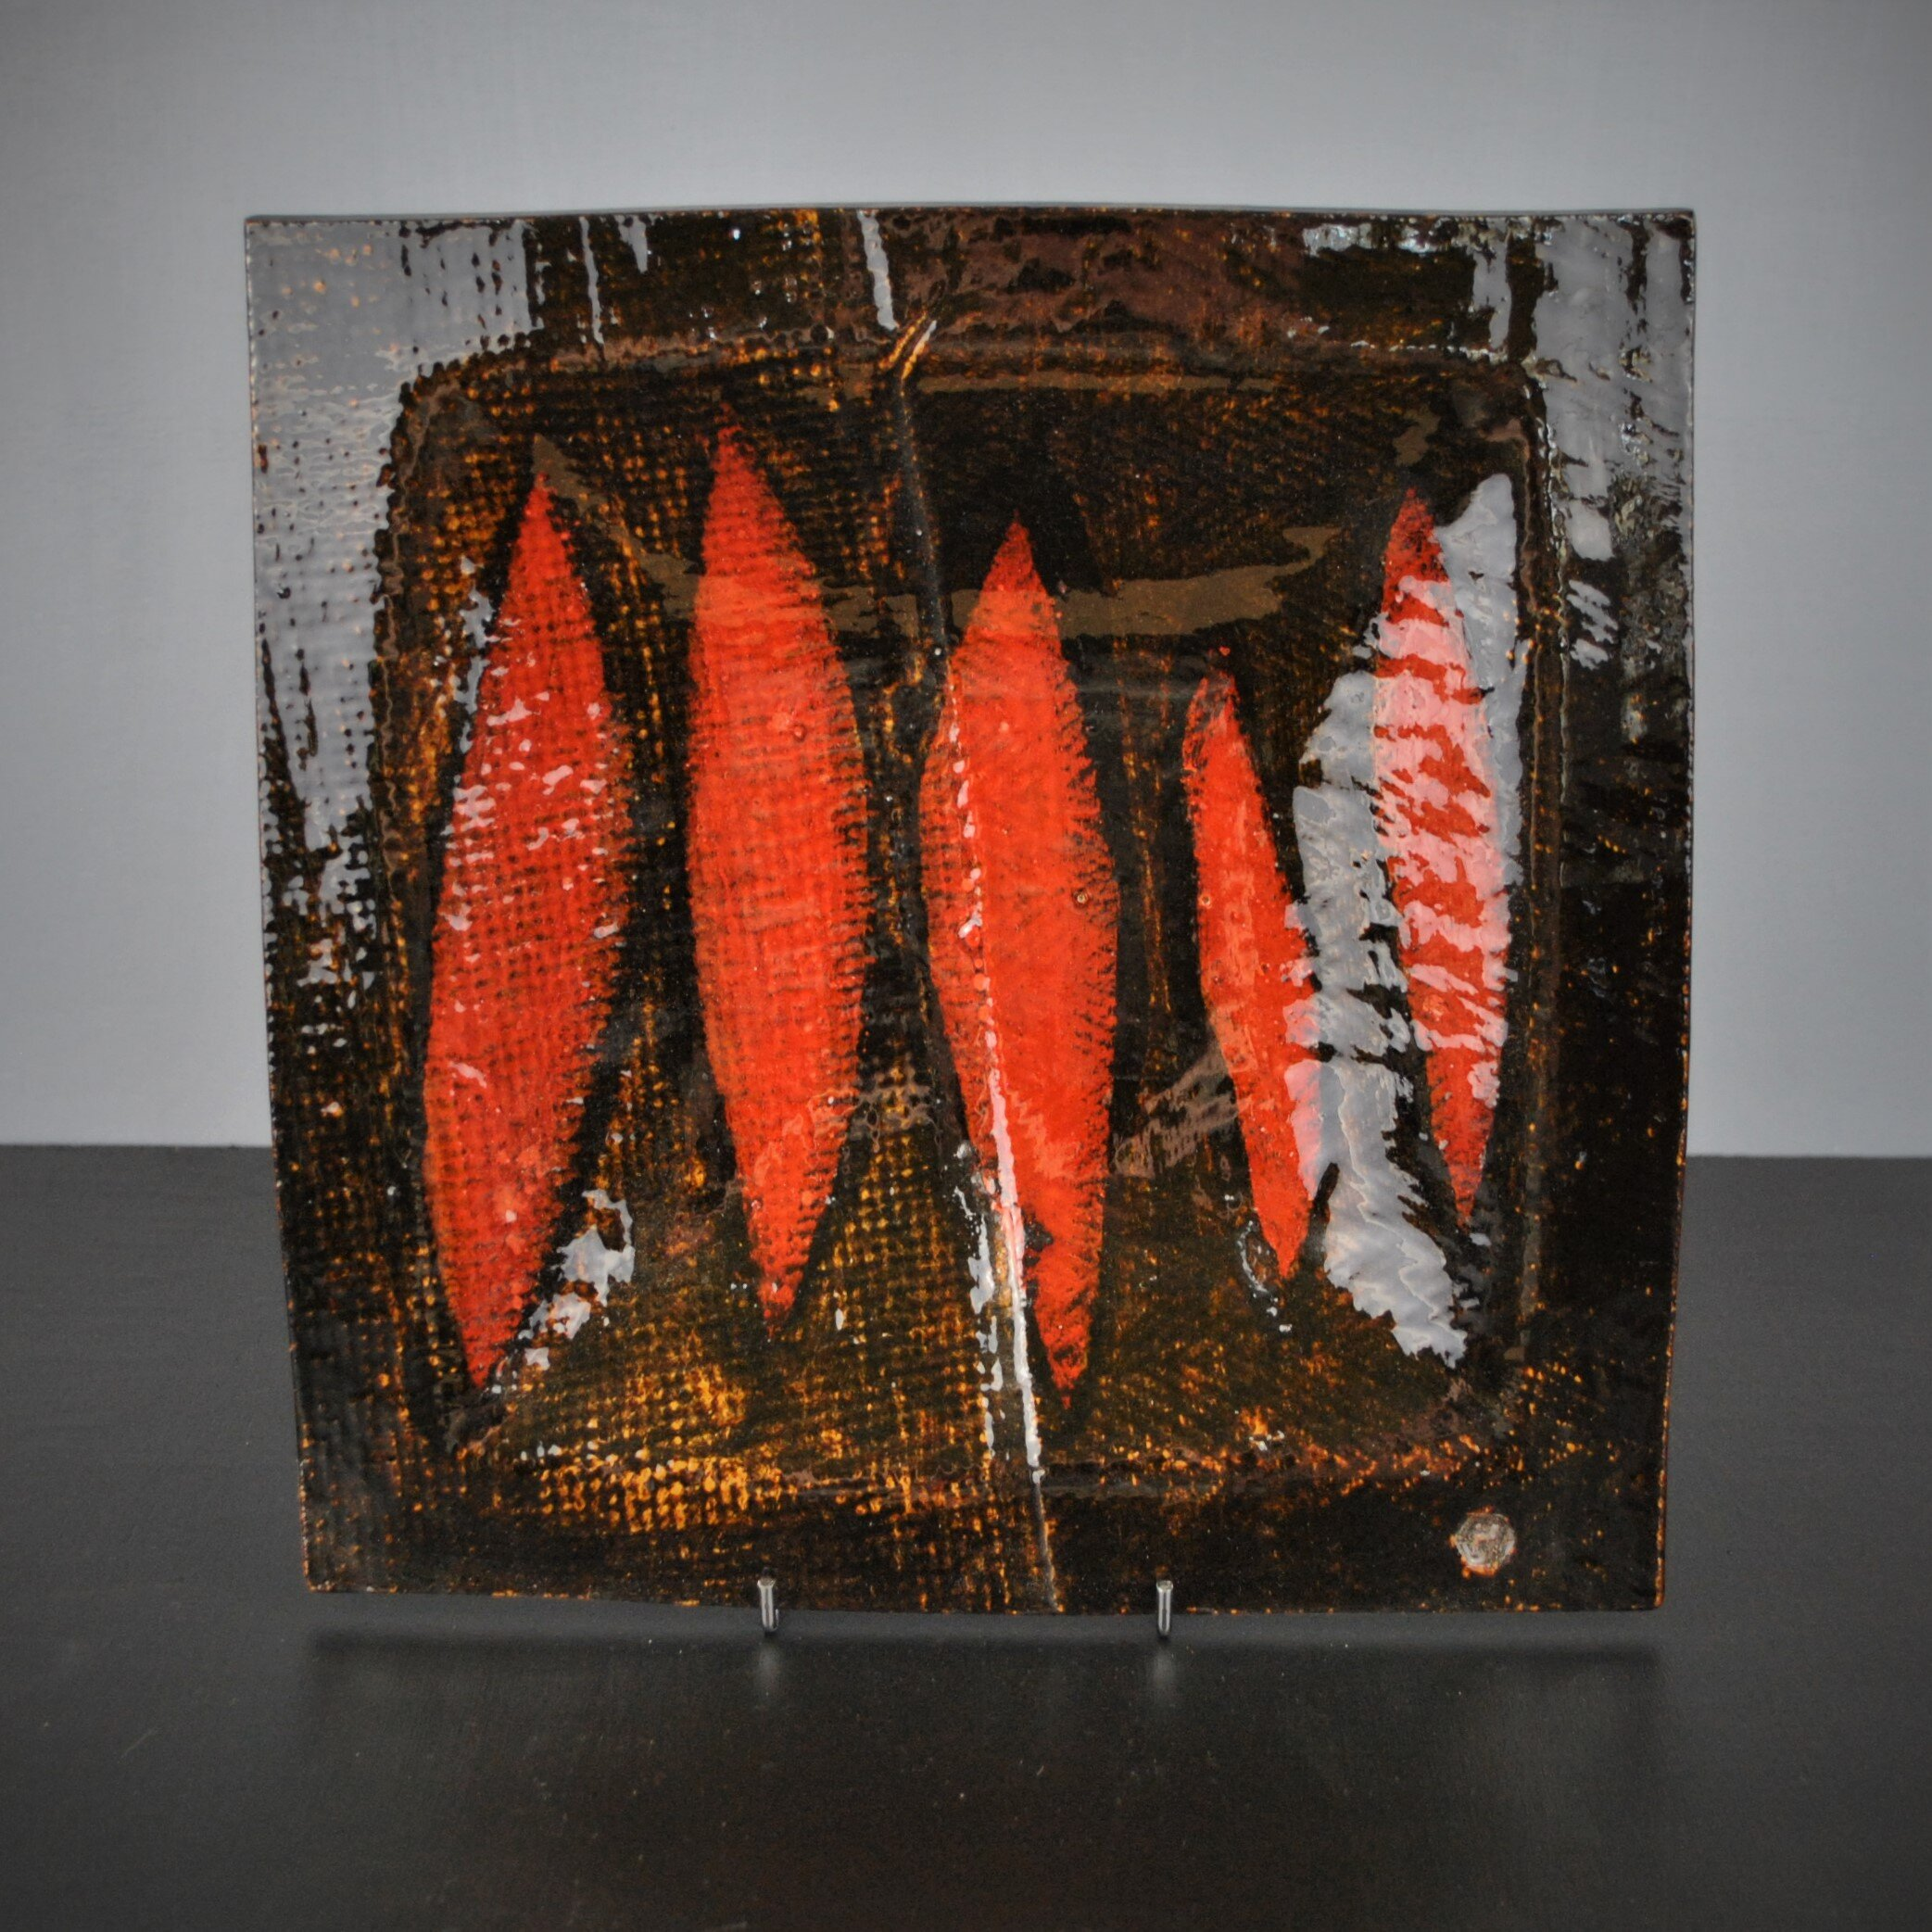 Dave Harper 2019 SHIELDS ONE. Orange & texture on stand (Square edit)  DSC_6283 (2).JPG